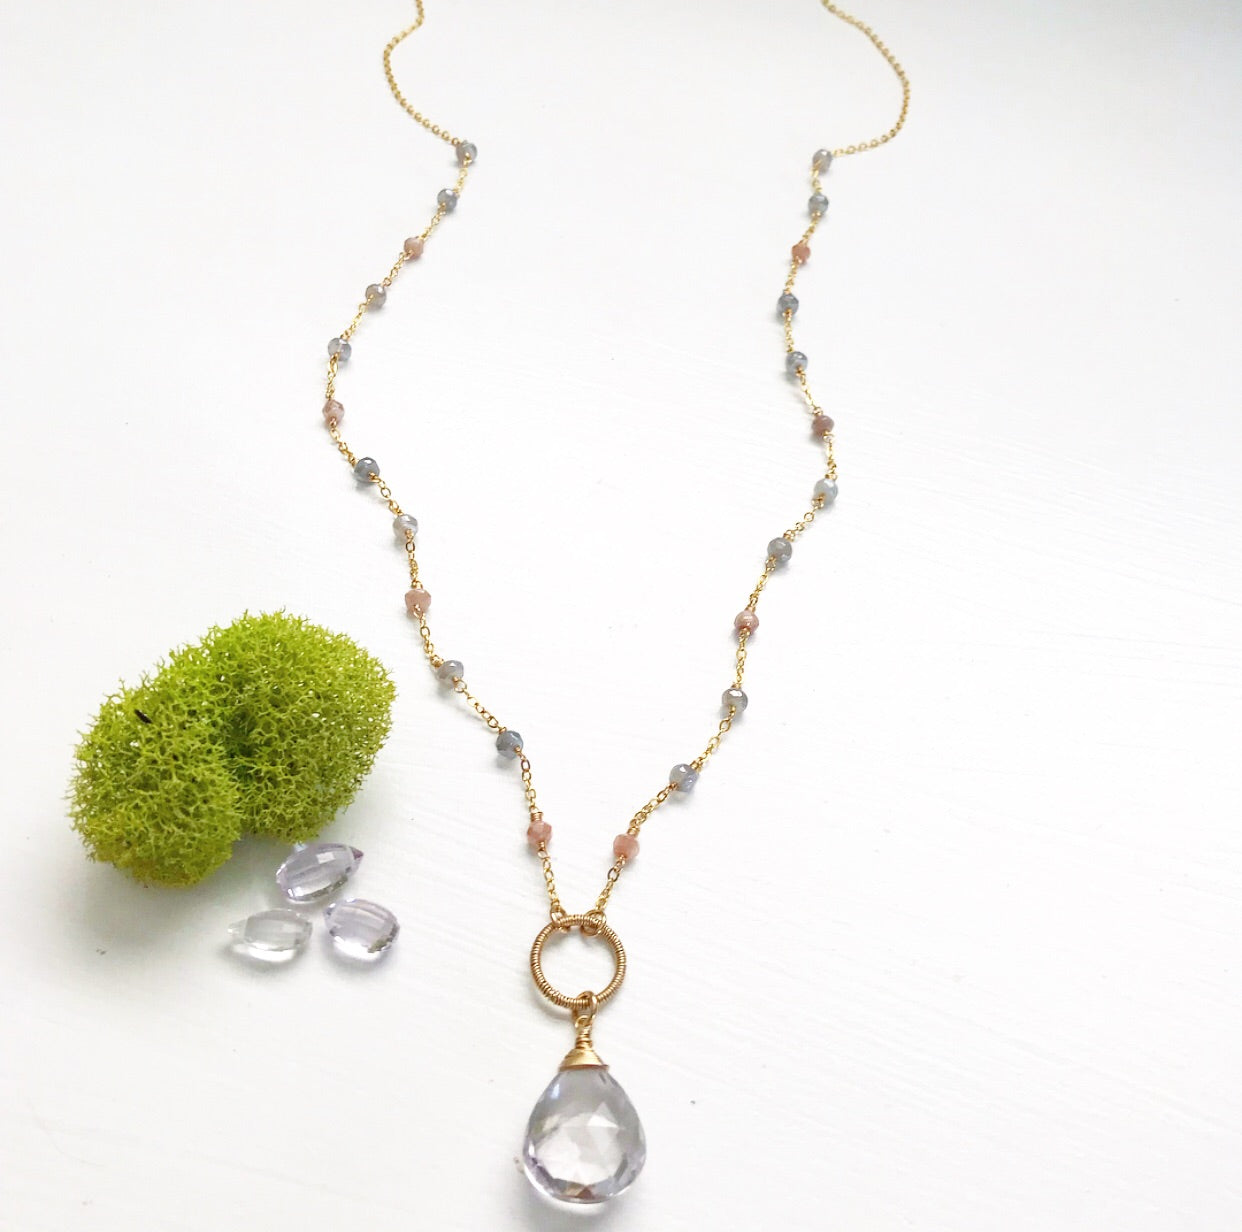 583-One of a Kind Gemstone Necklace